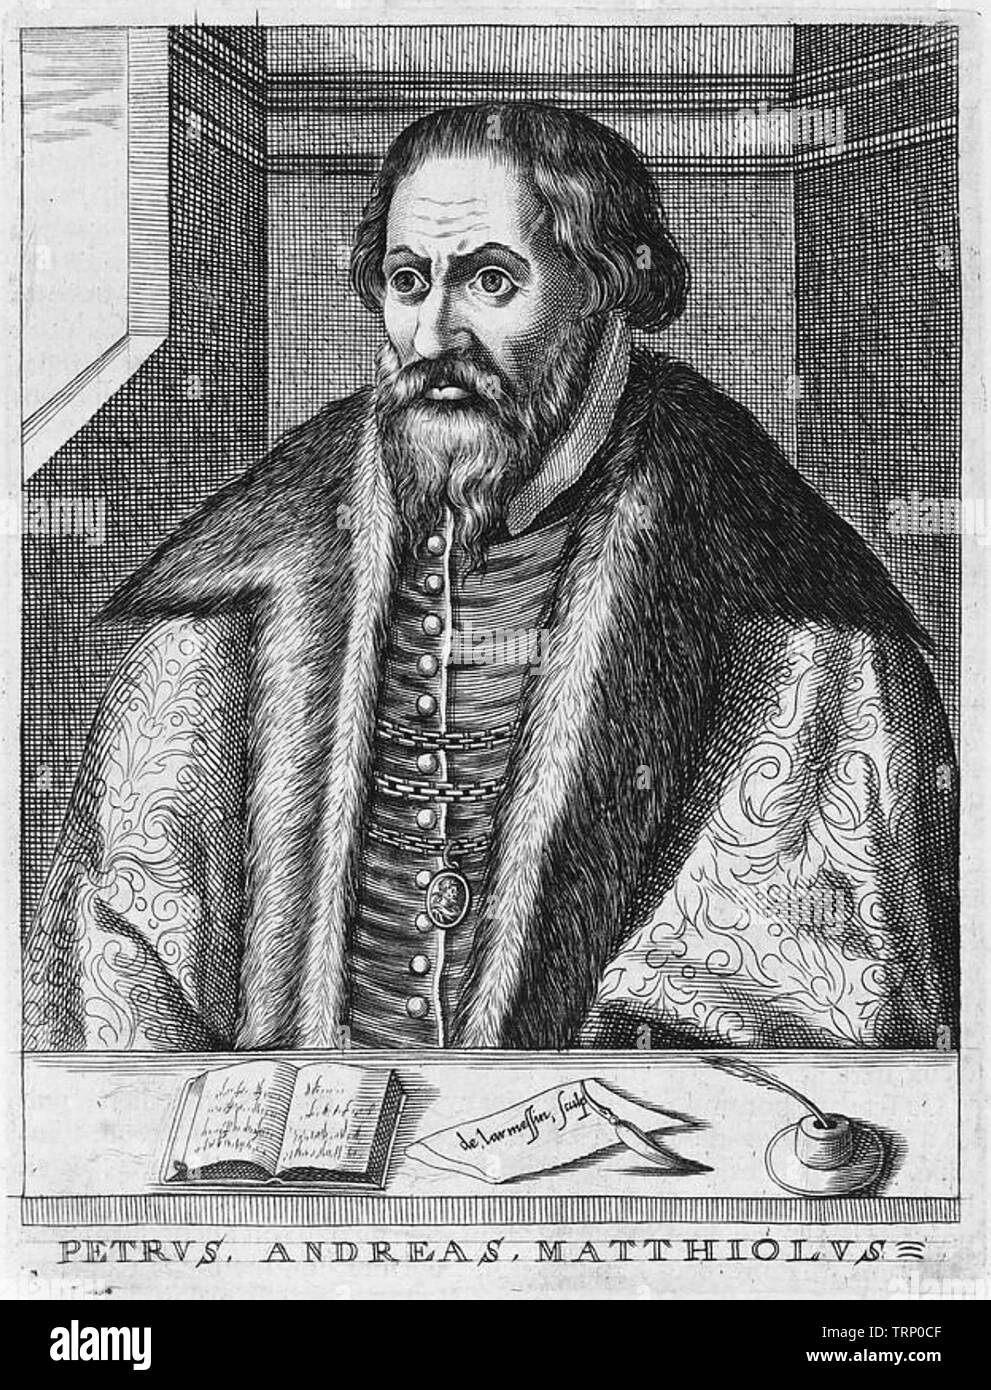 PIETRO MATTIOLI (1501-1577) Italian physician and naturalist - Stock Image